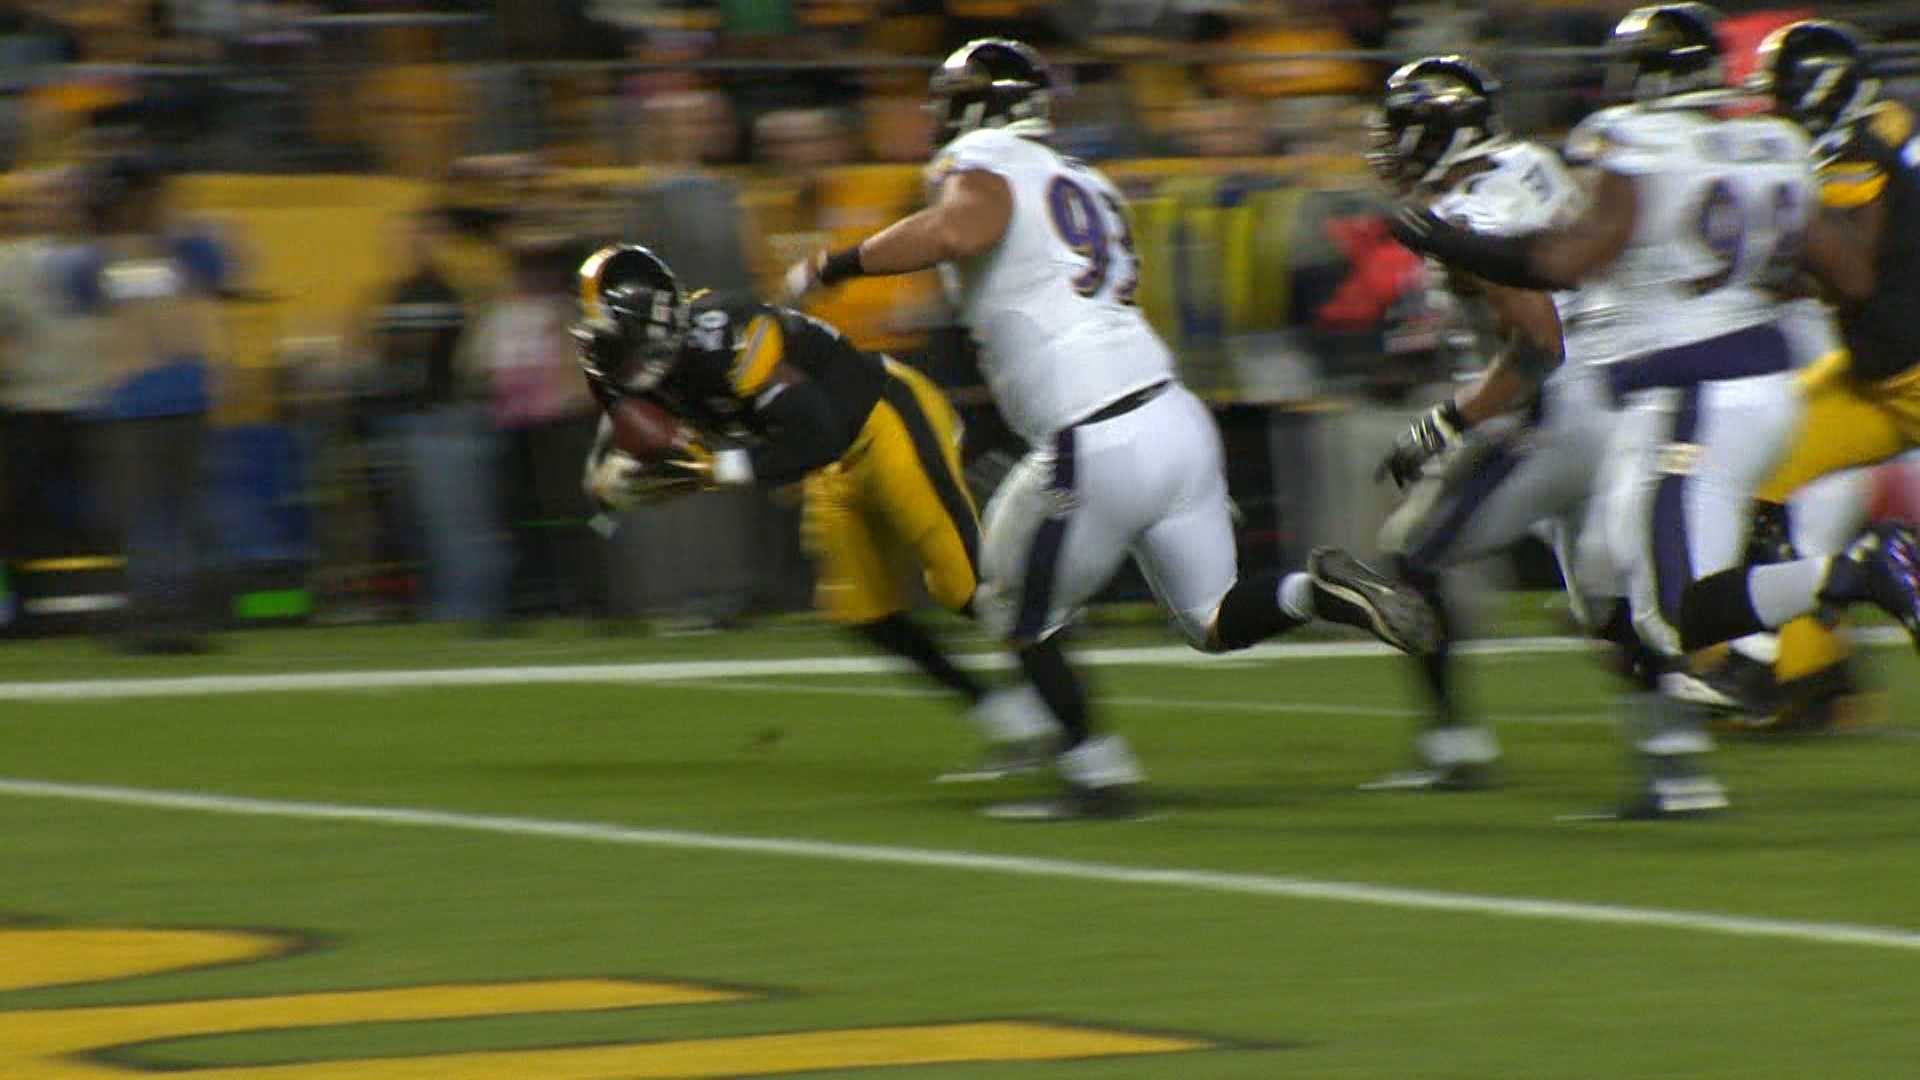 Le'Veon Bell rushed for the Steeler's first touchdown of the night against the Baltimore Ravens.